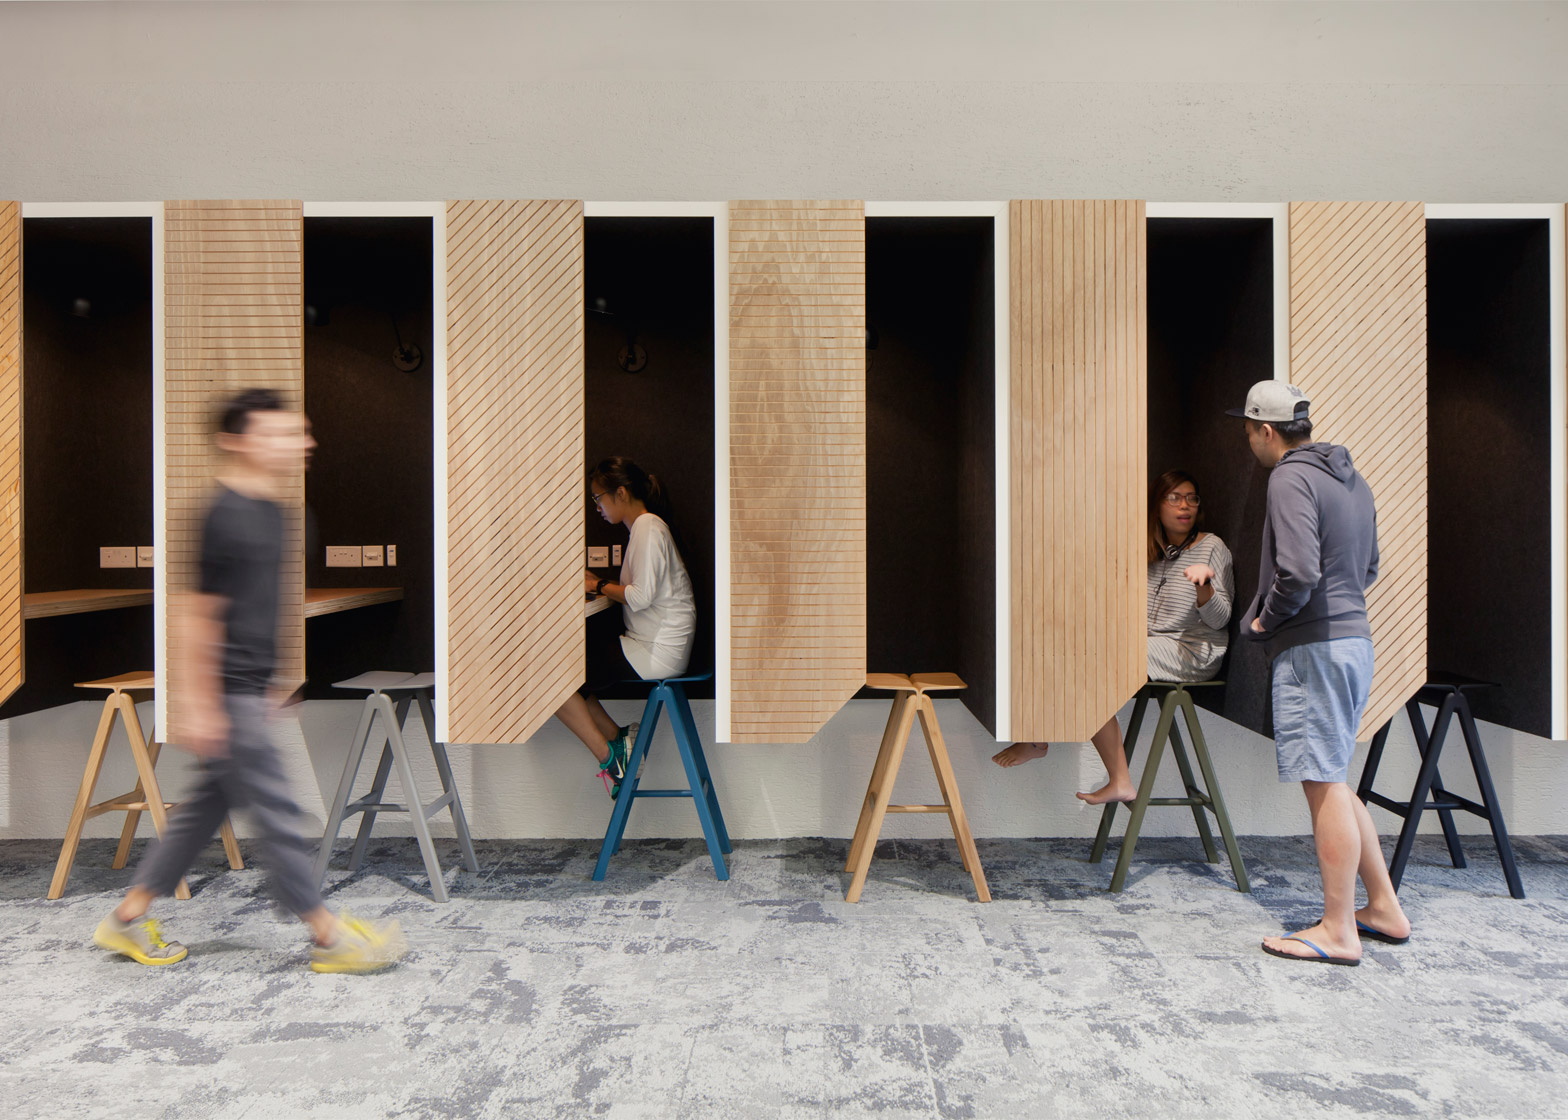 airbnb-offices-singapore-farm_dezeen_1568_5